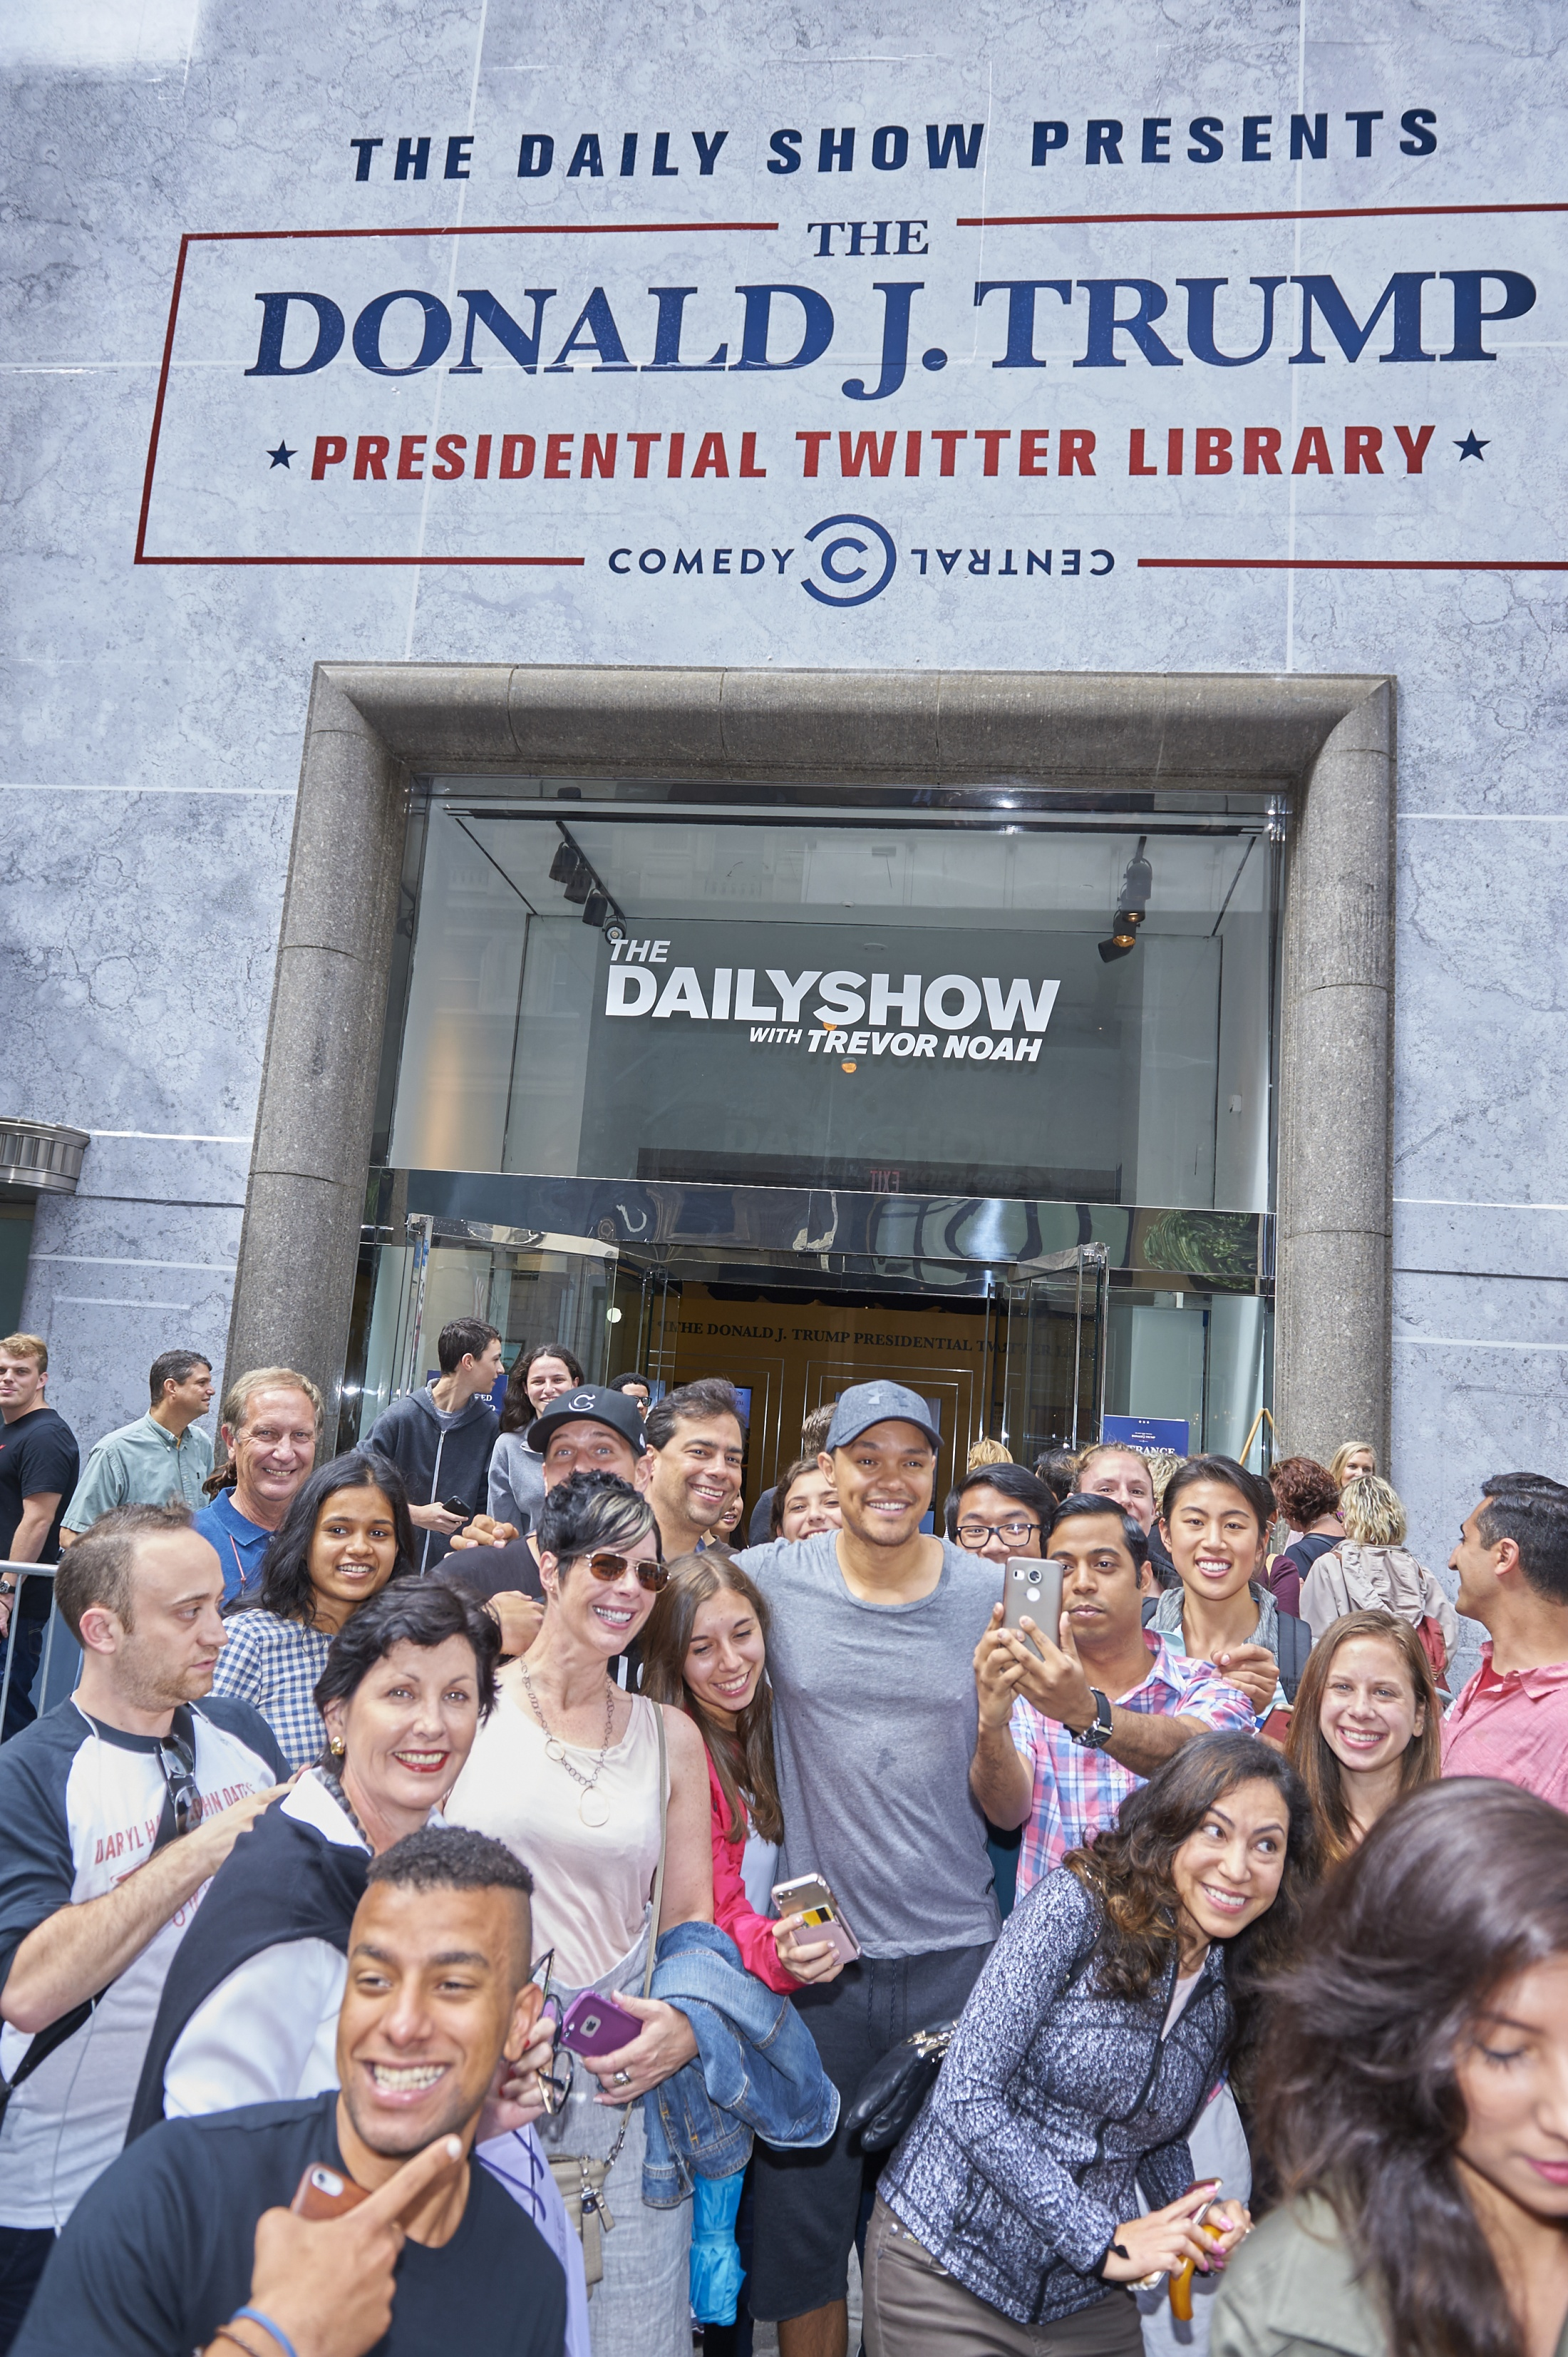 Thumbnail for THE DAILY SHOW PRESENTS THE DONALD J TRUMP PRESIDENTIAL TWITTER LIBRARY